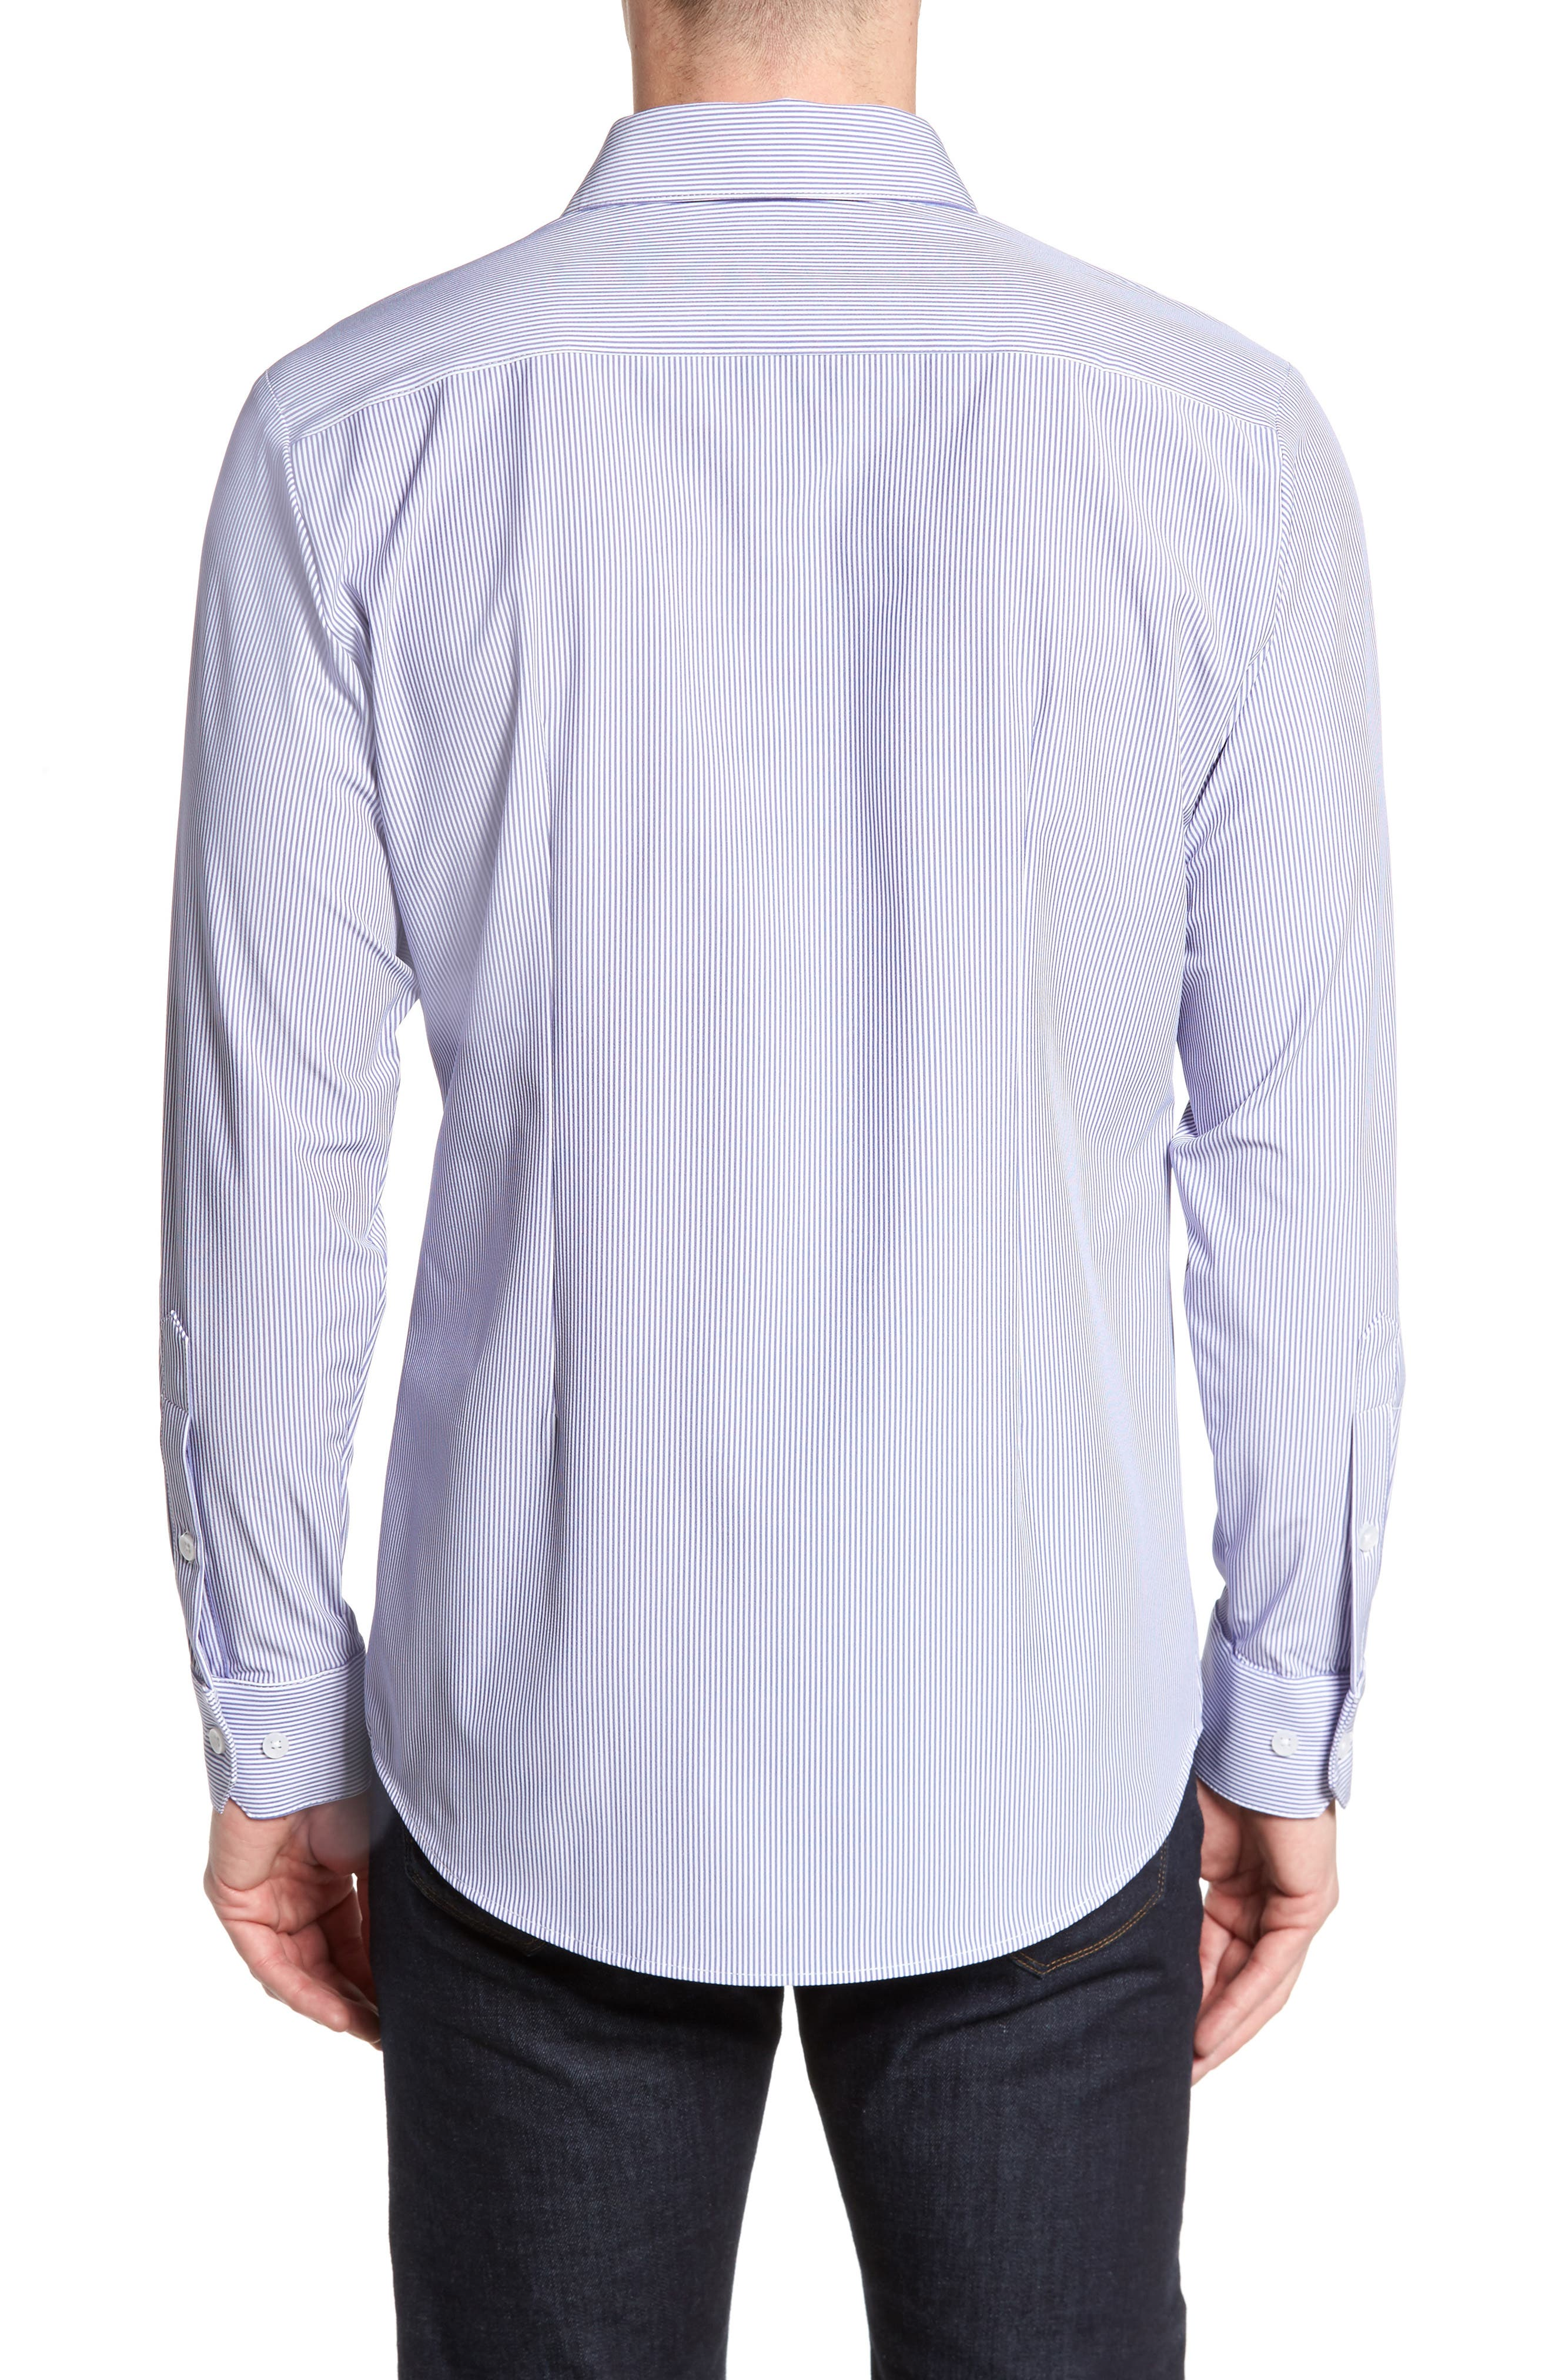 Newport Pinstripe Sport Shirt,                             Alternate thumbnail 2, color,